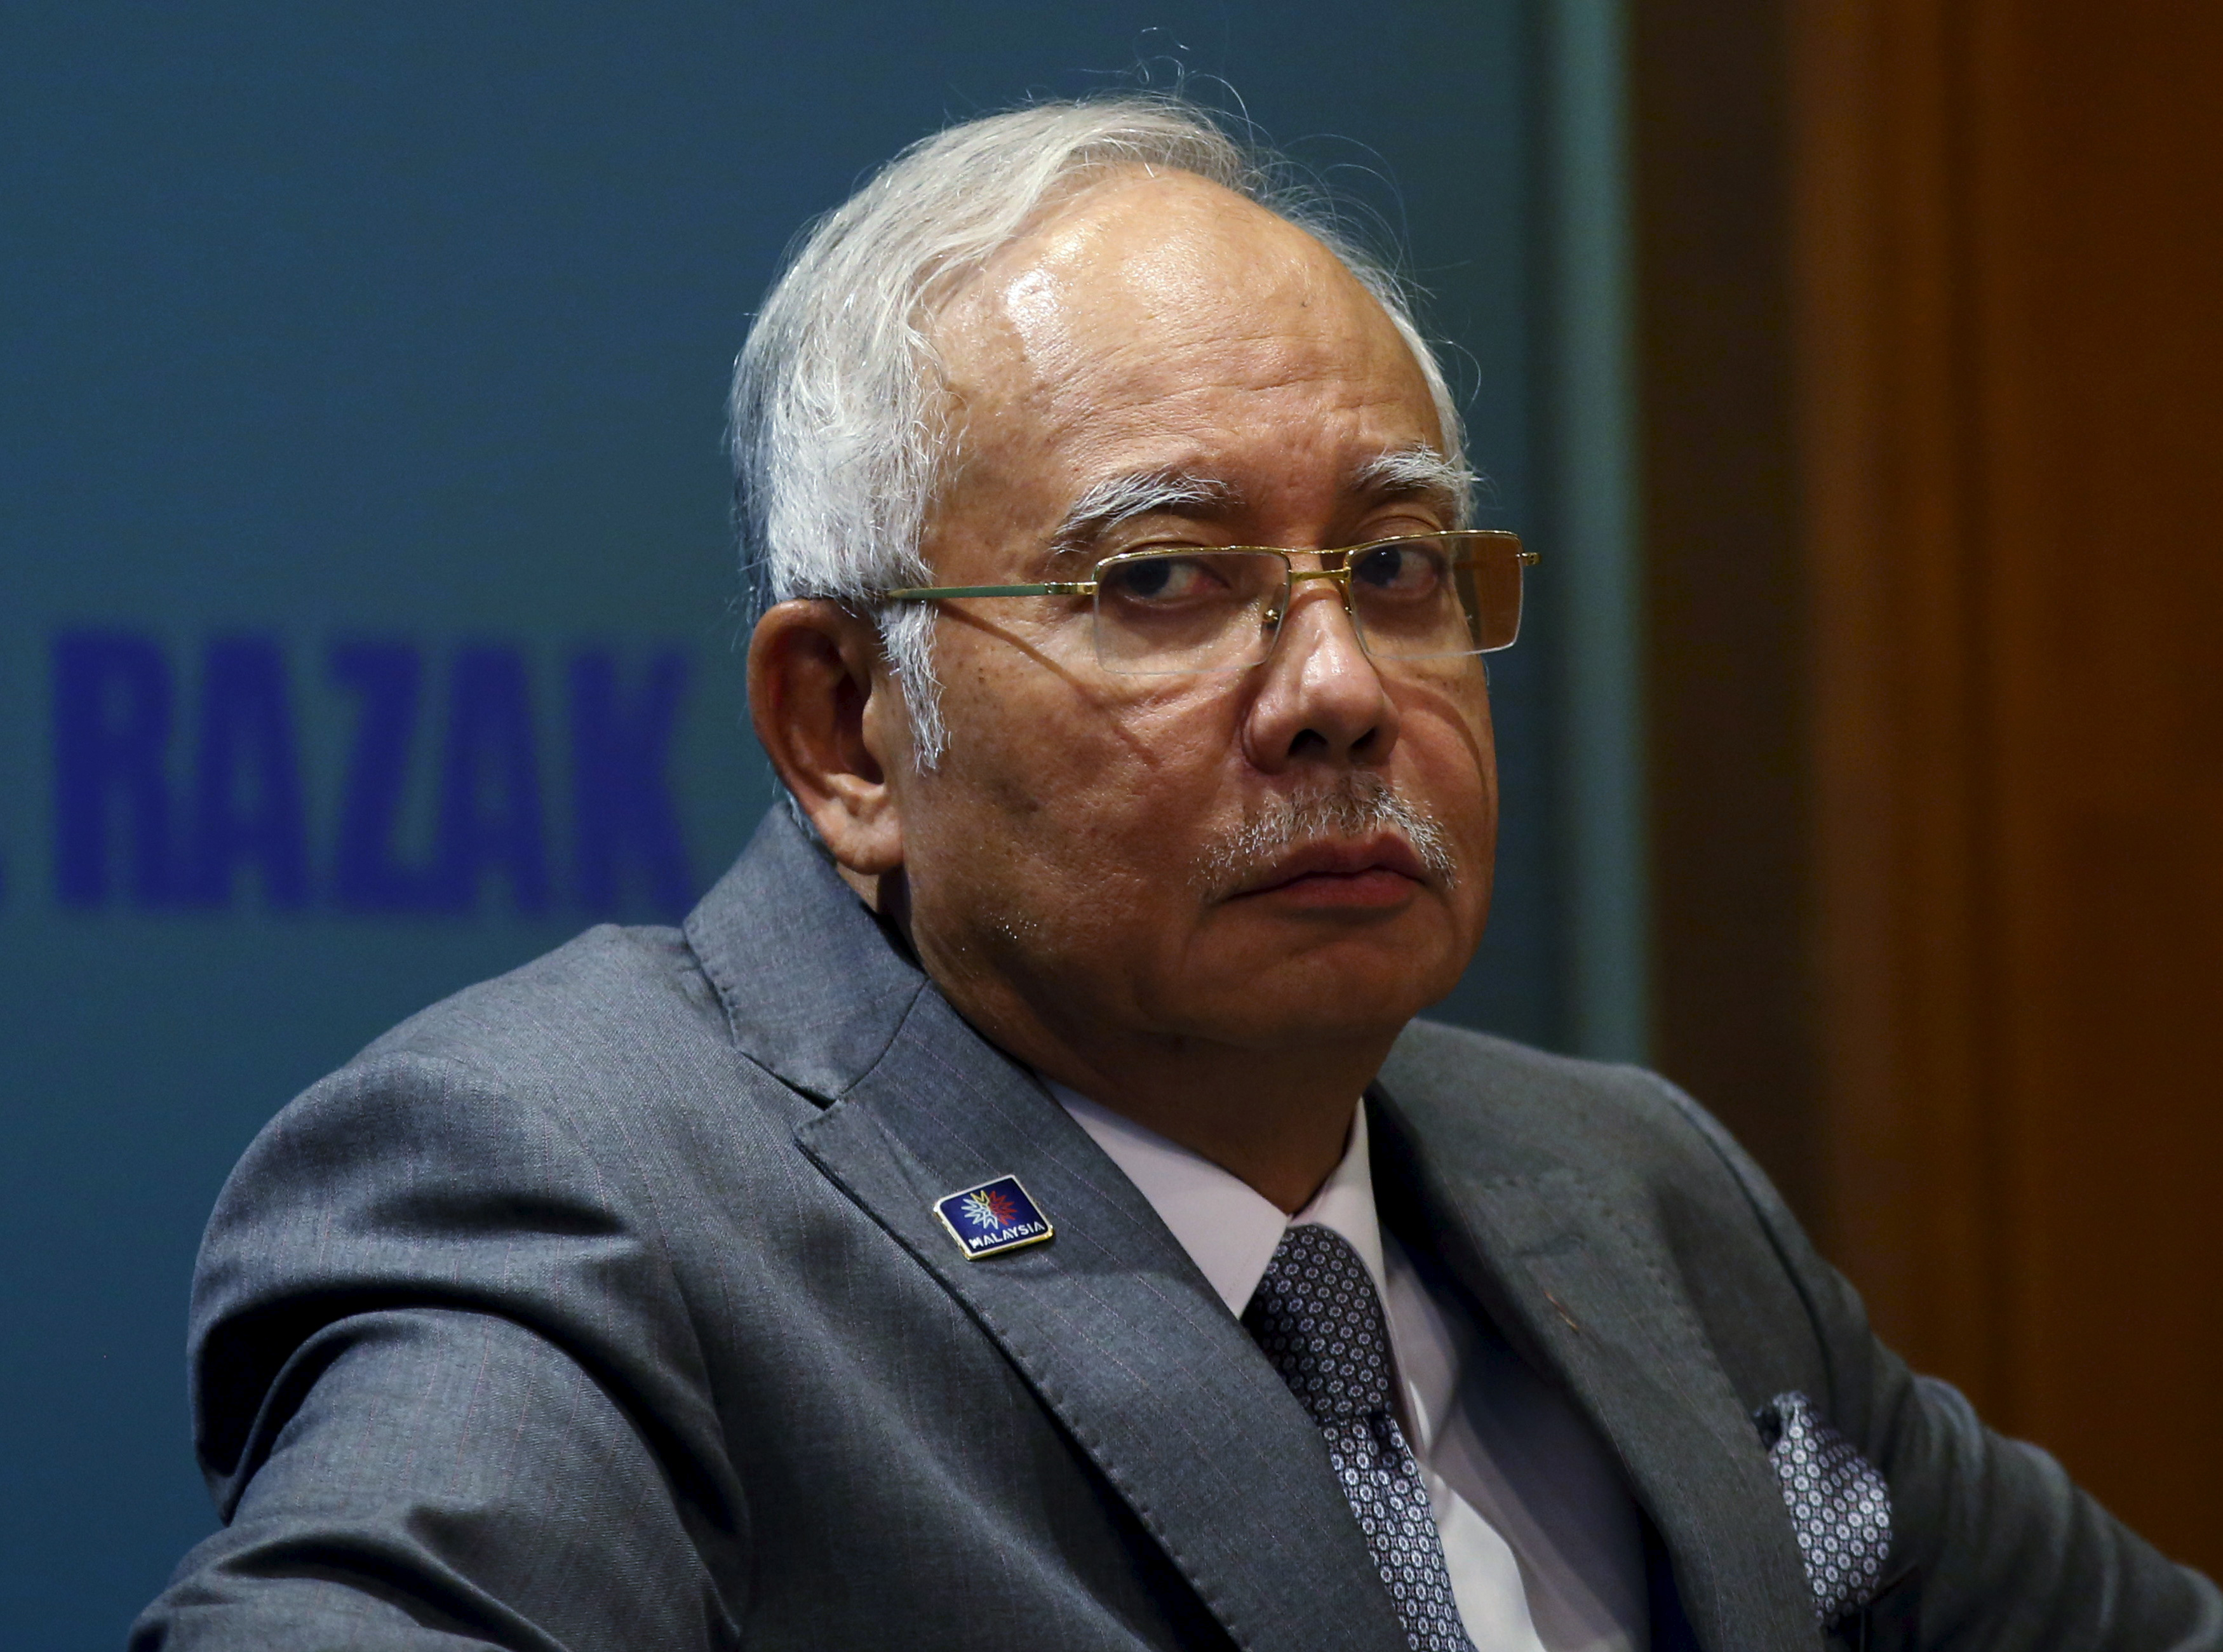 Malaysia's Prime Minister Najib Razak attends a presentation for government interns at the Prime Minister's Office in Putrajaya, Malaysia, on July 8, 2015